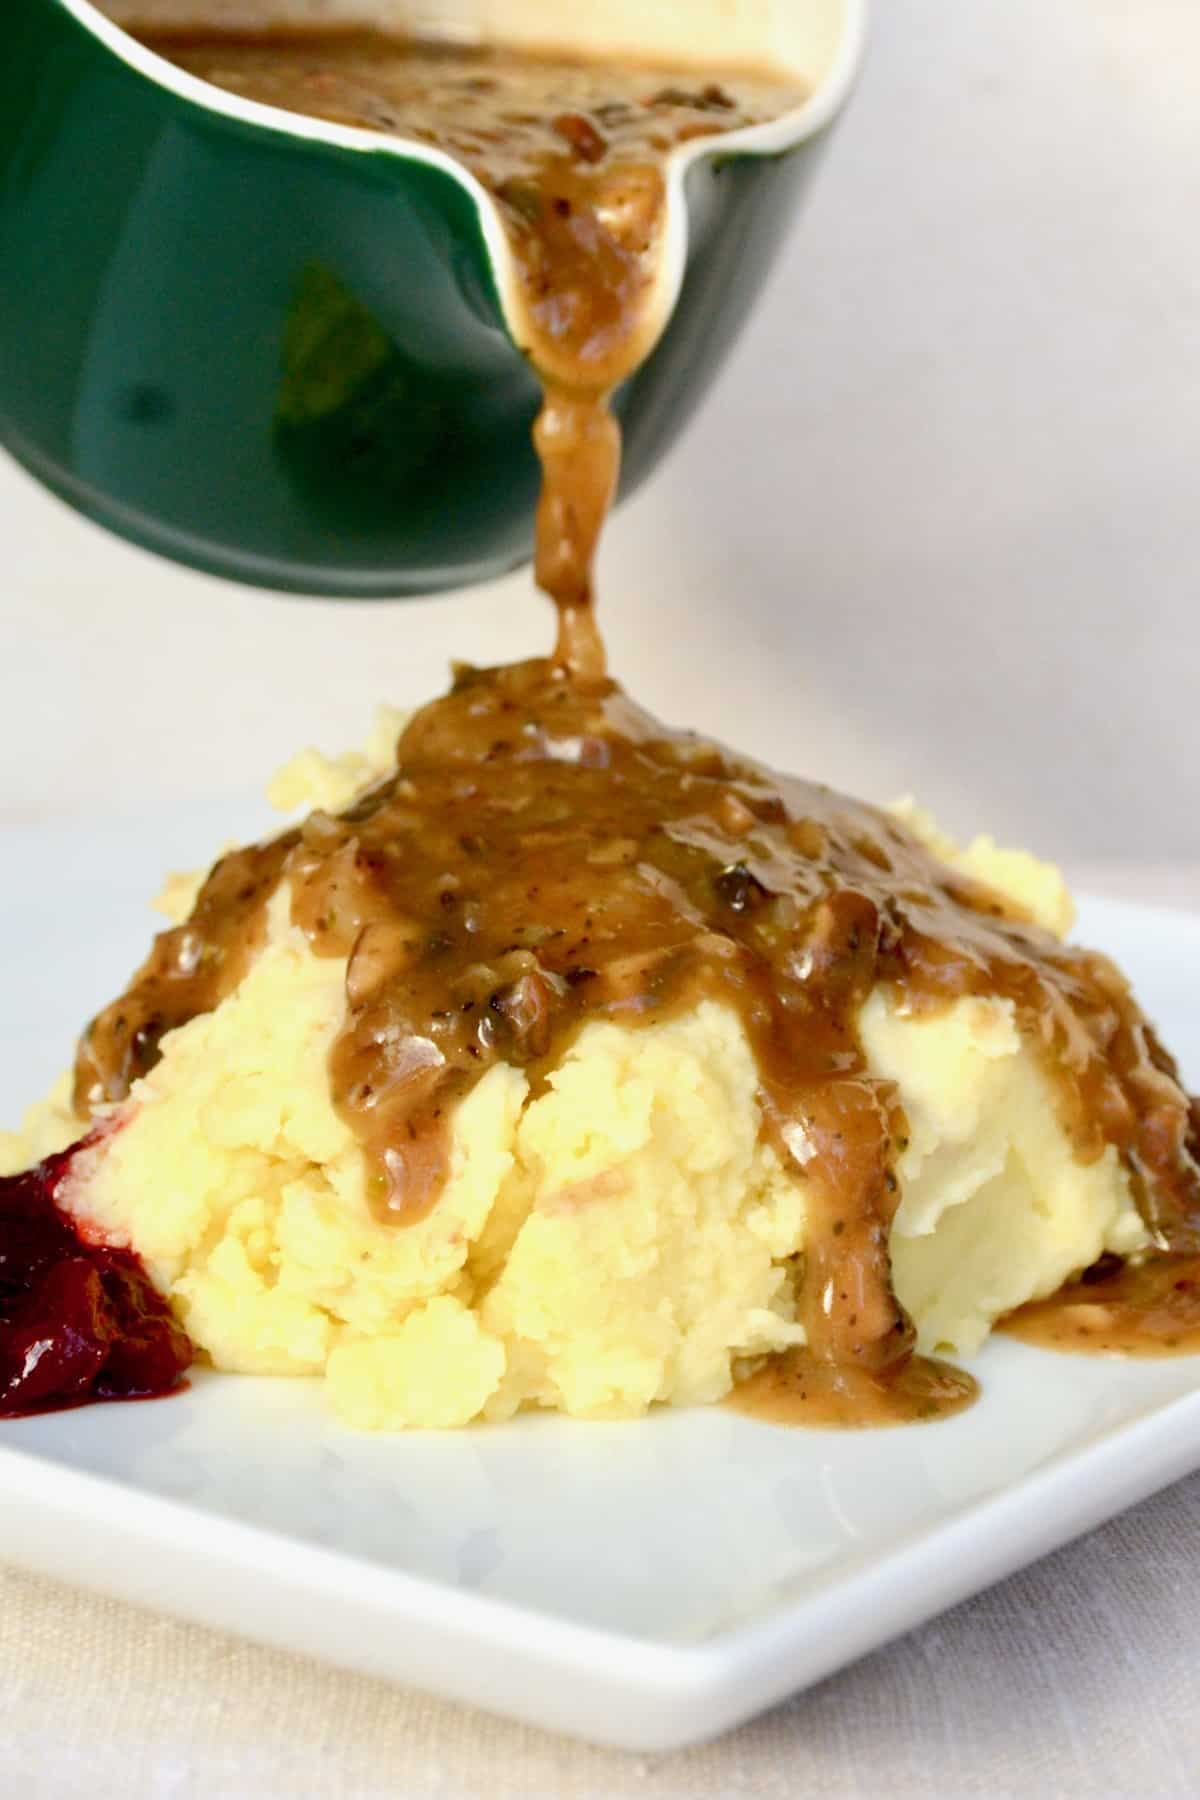 Gravy is poured and thickly flows down the side of mashed potato.